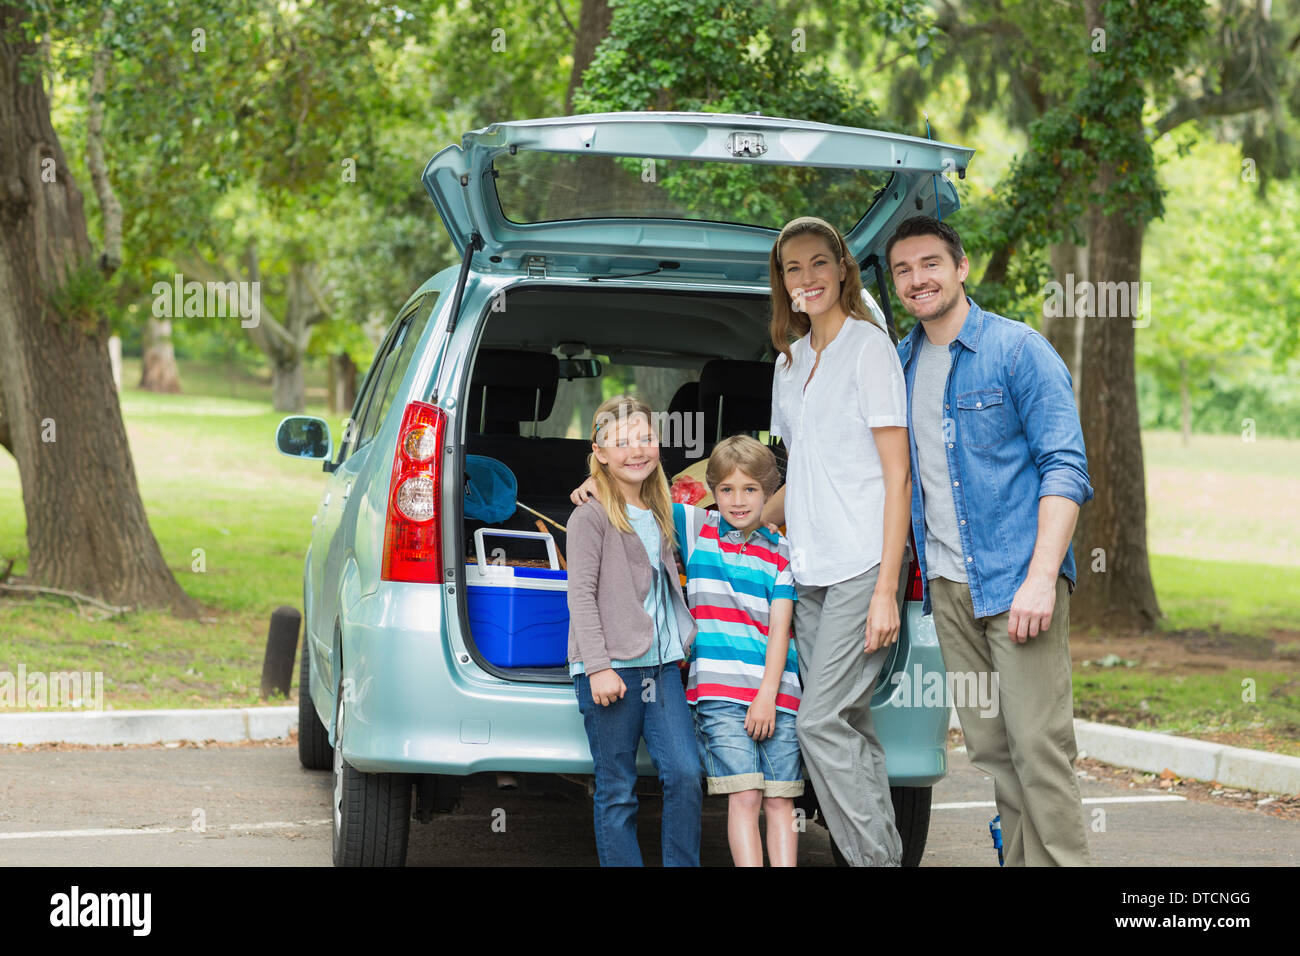 Family of four by car trunk while on picnic - Stock Image